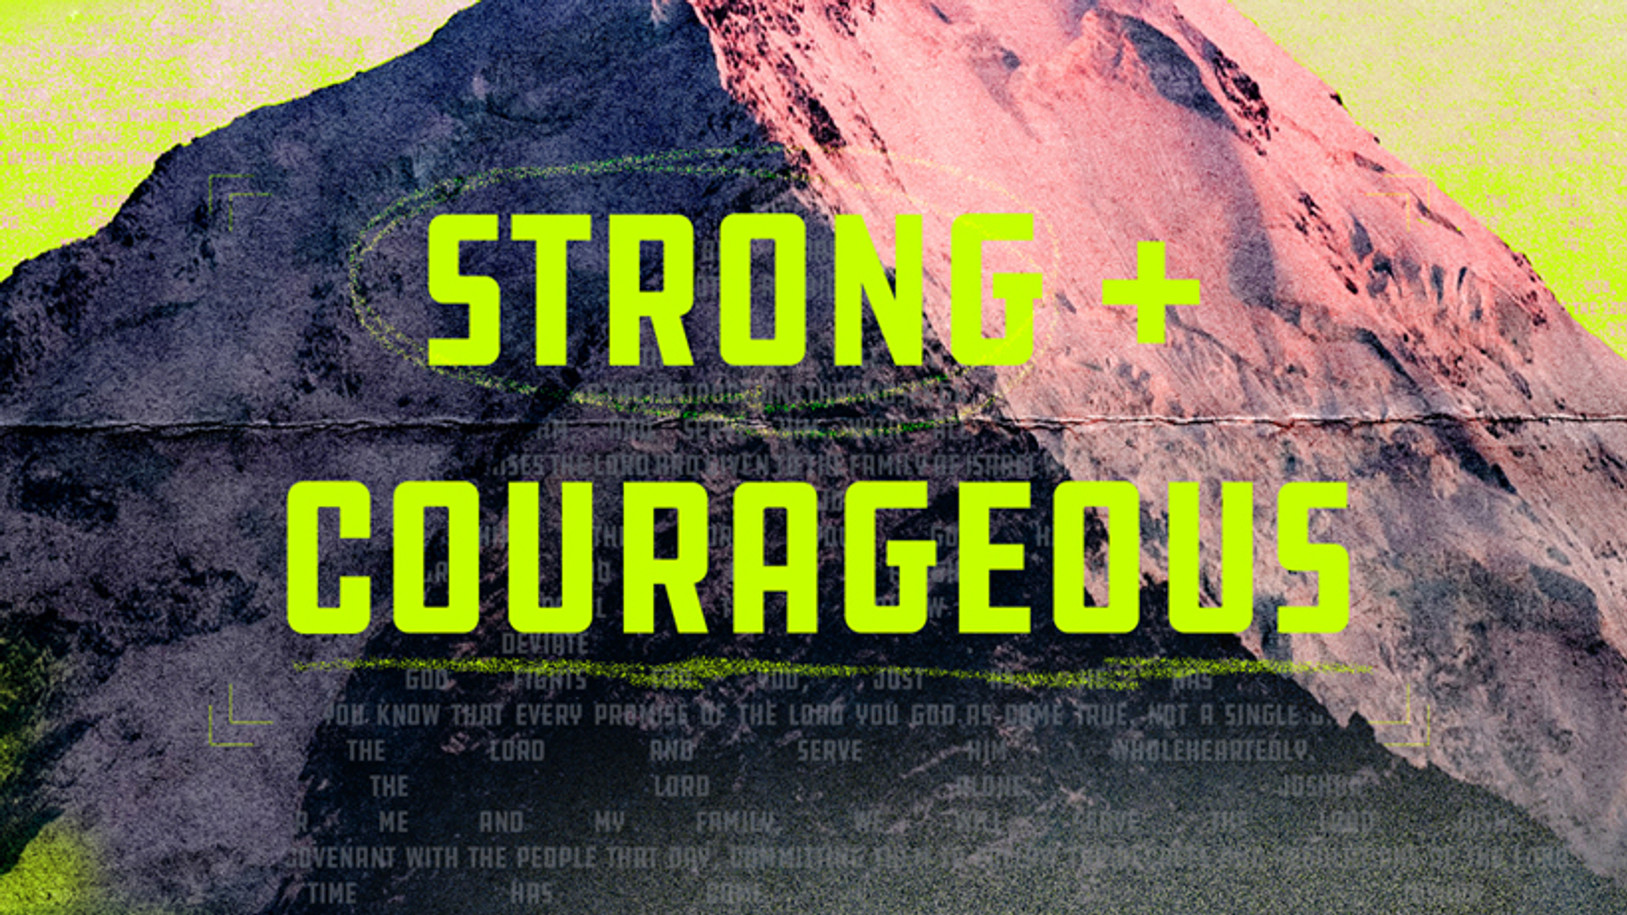 Strong & Courageous - Stake in the Ground